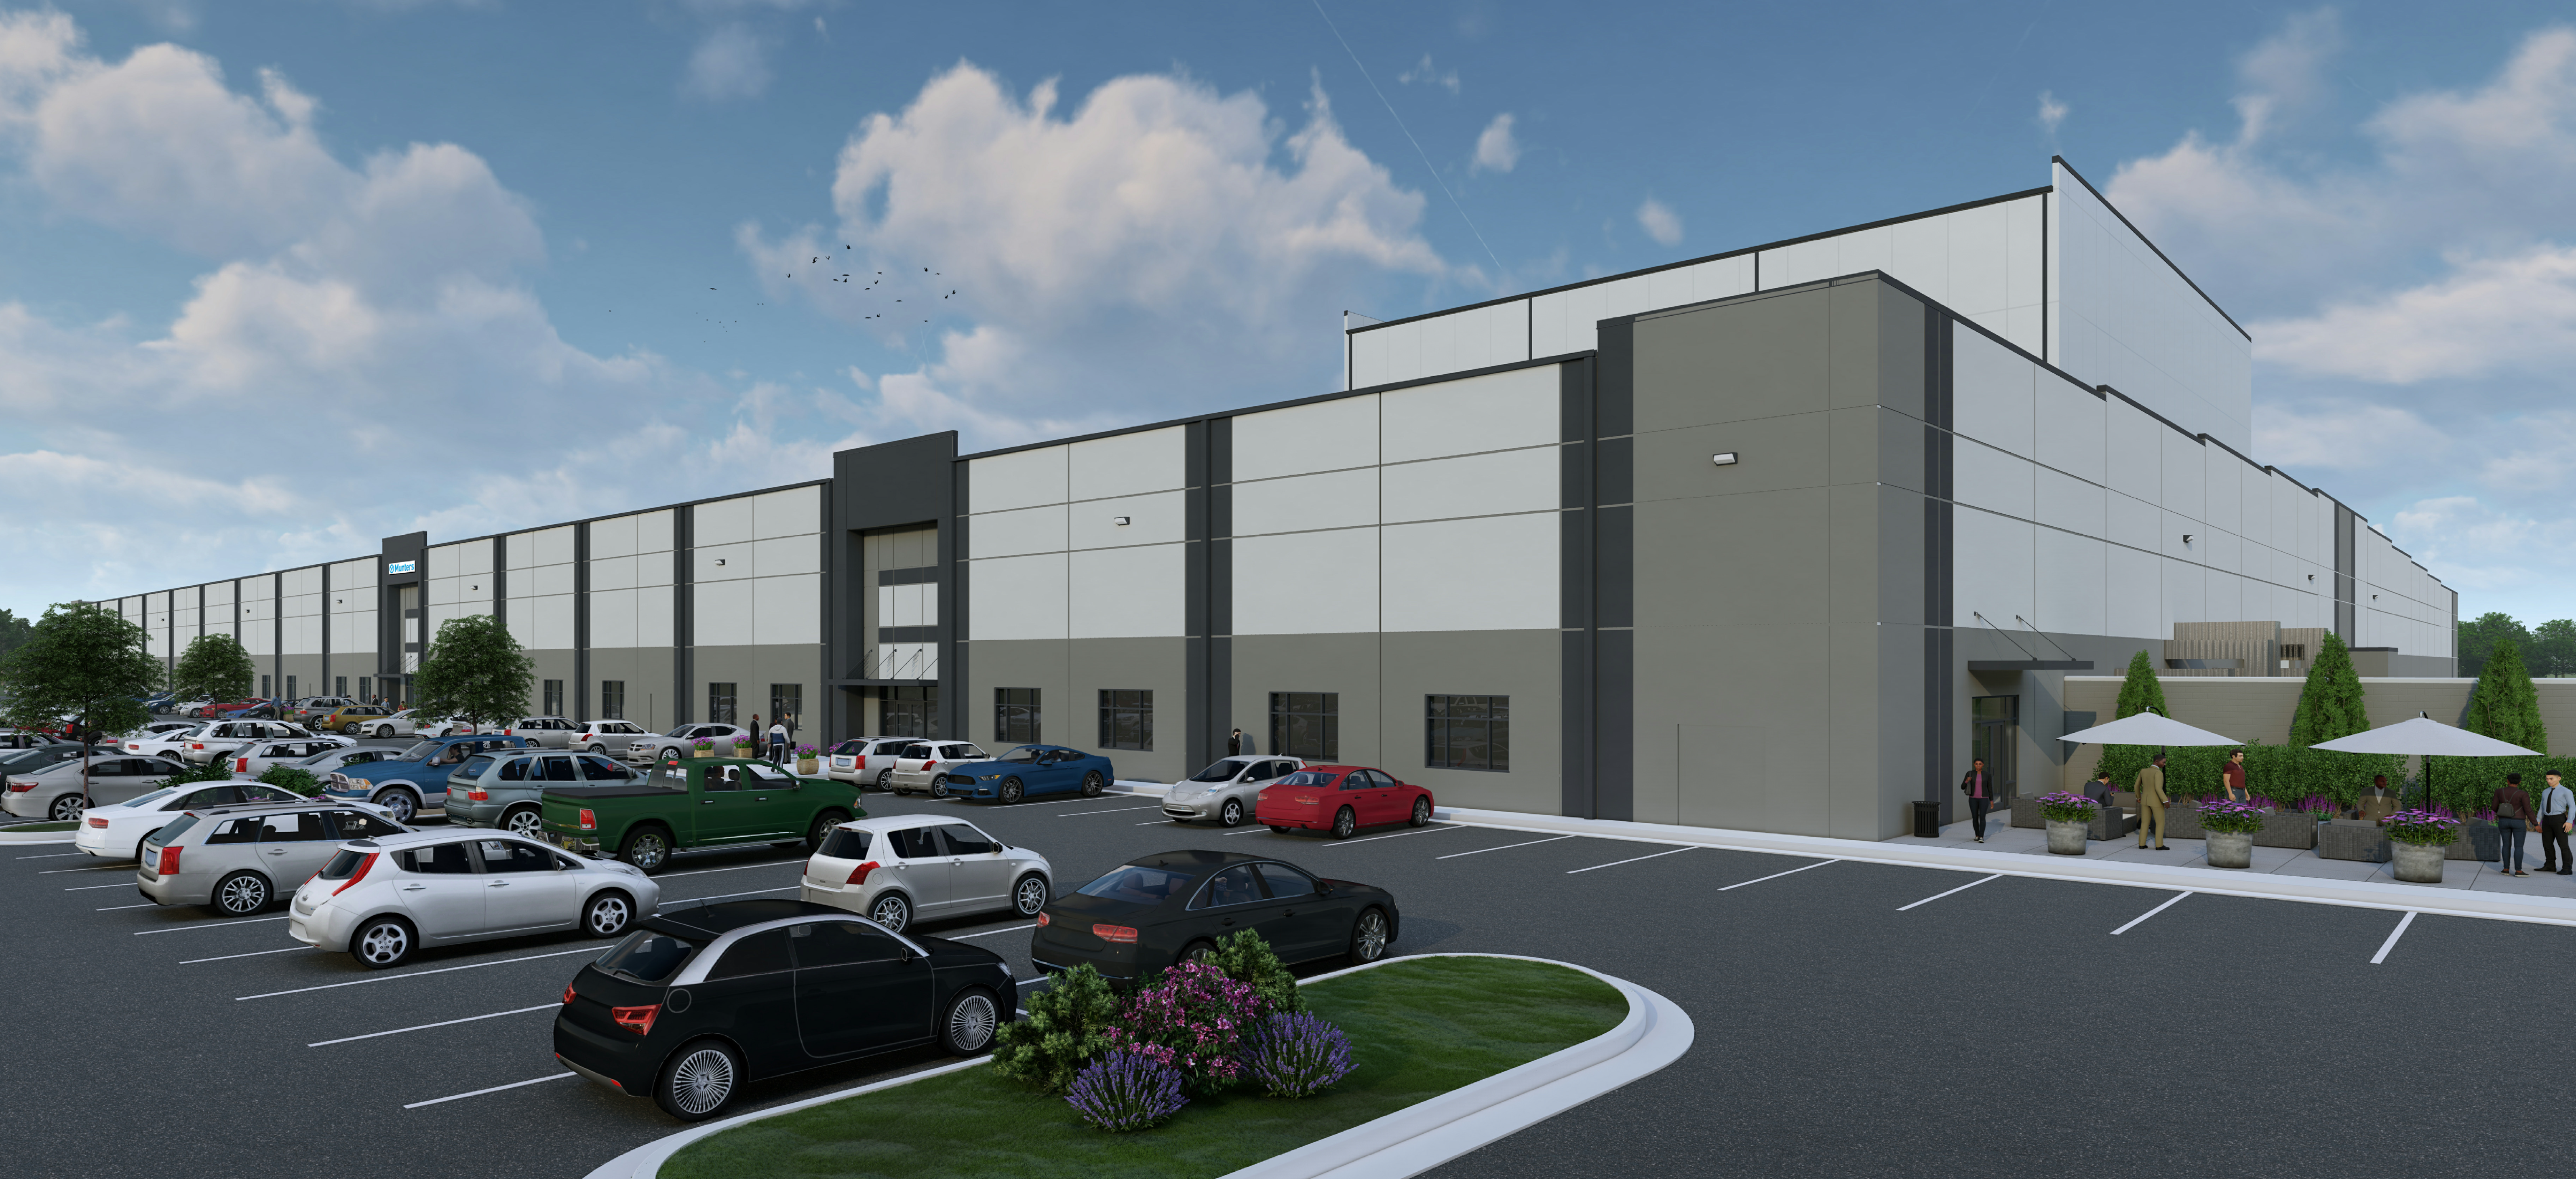 Munters Breaks Ground on New 365,000 SF Manufacturing Facility in Botetourt County, Virginia 10